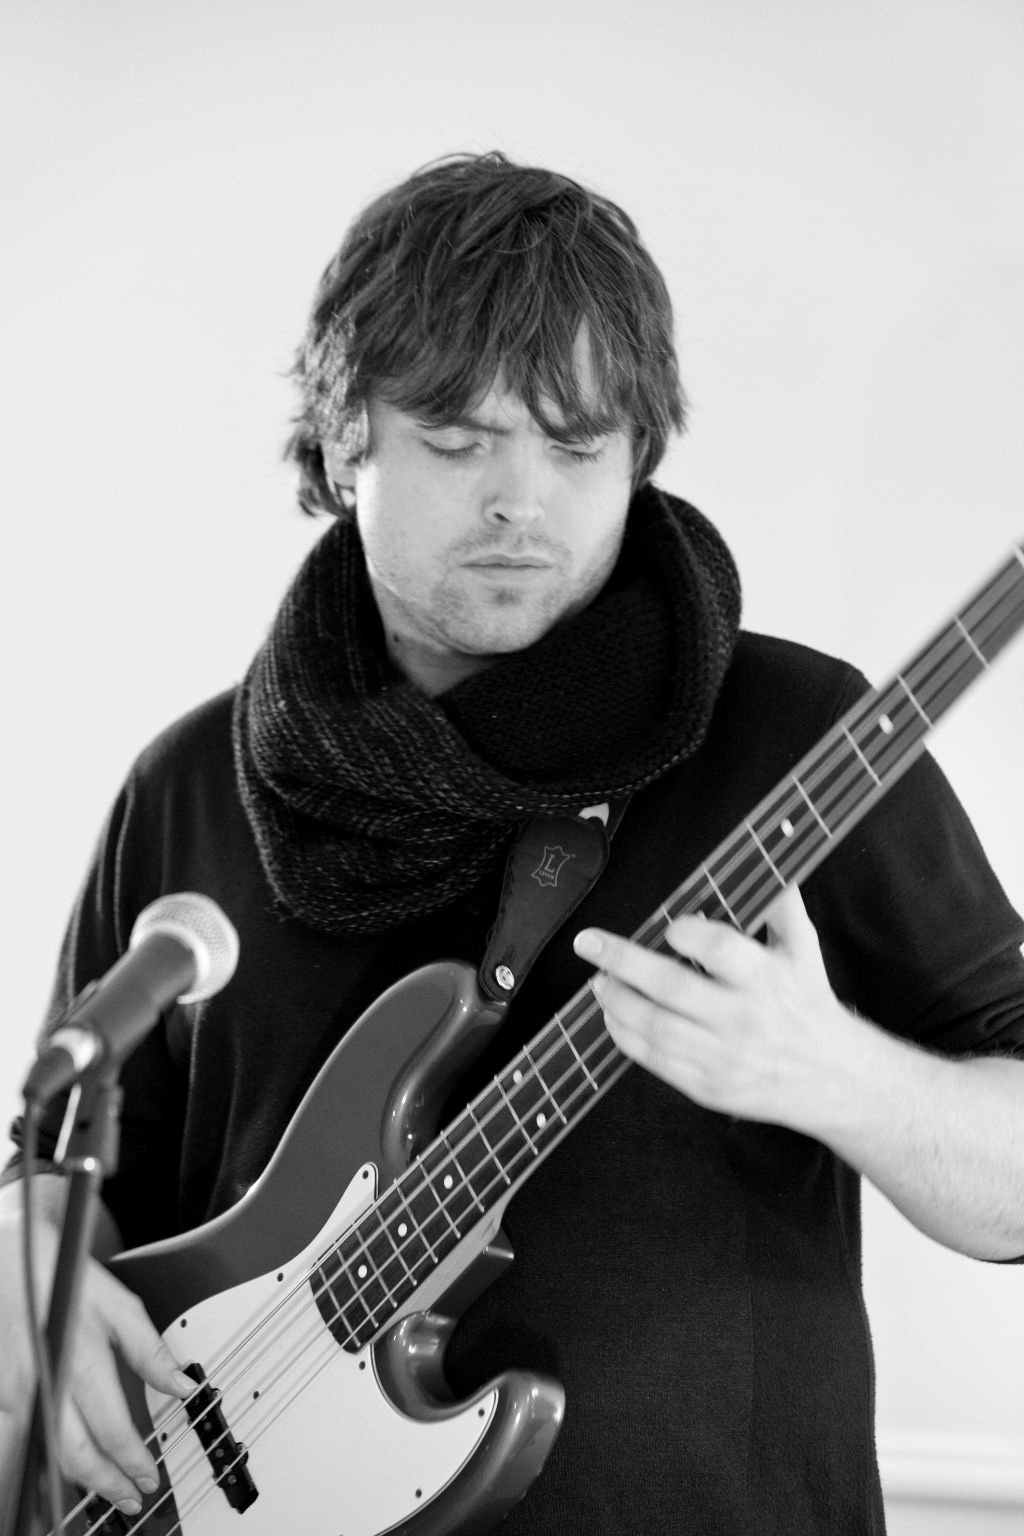 Andy, the bass guitar player